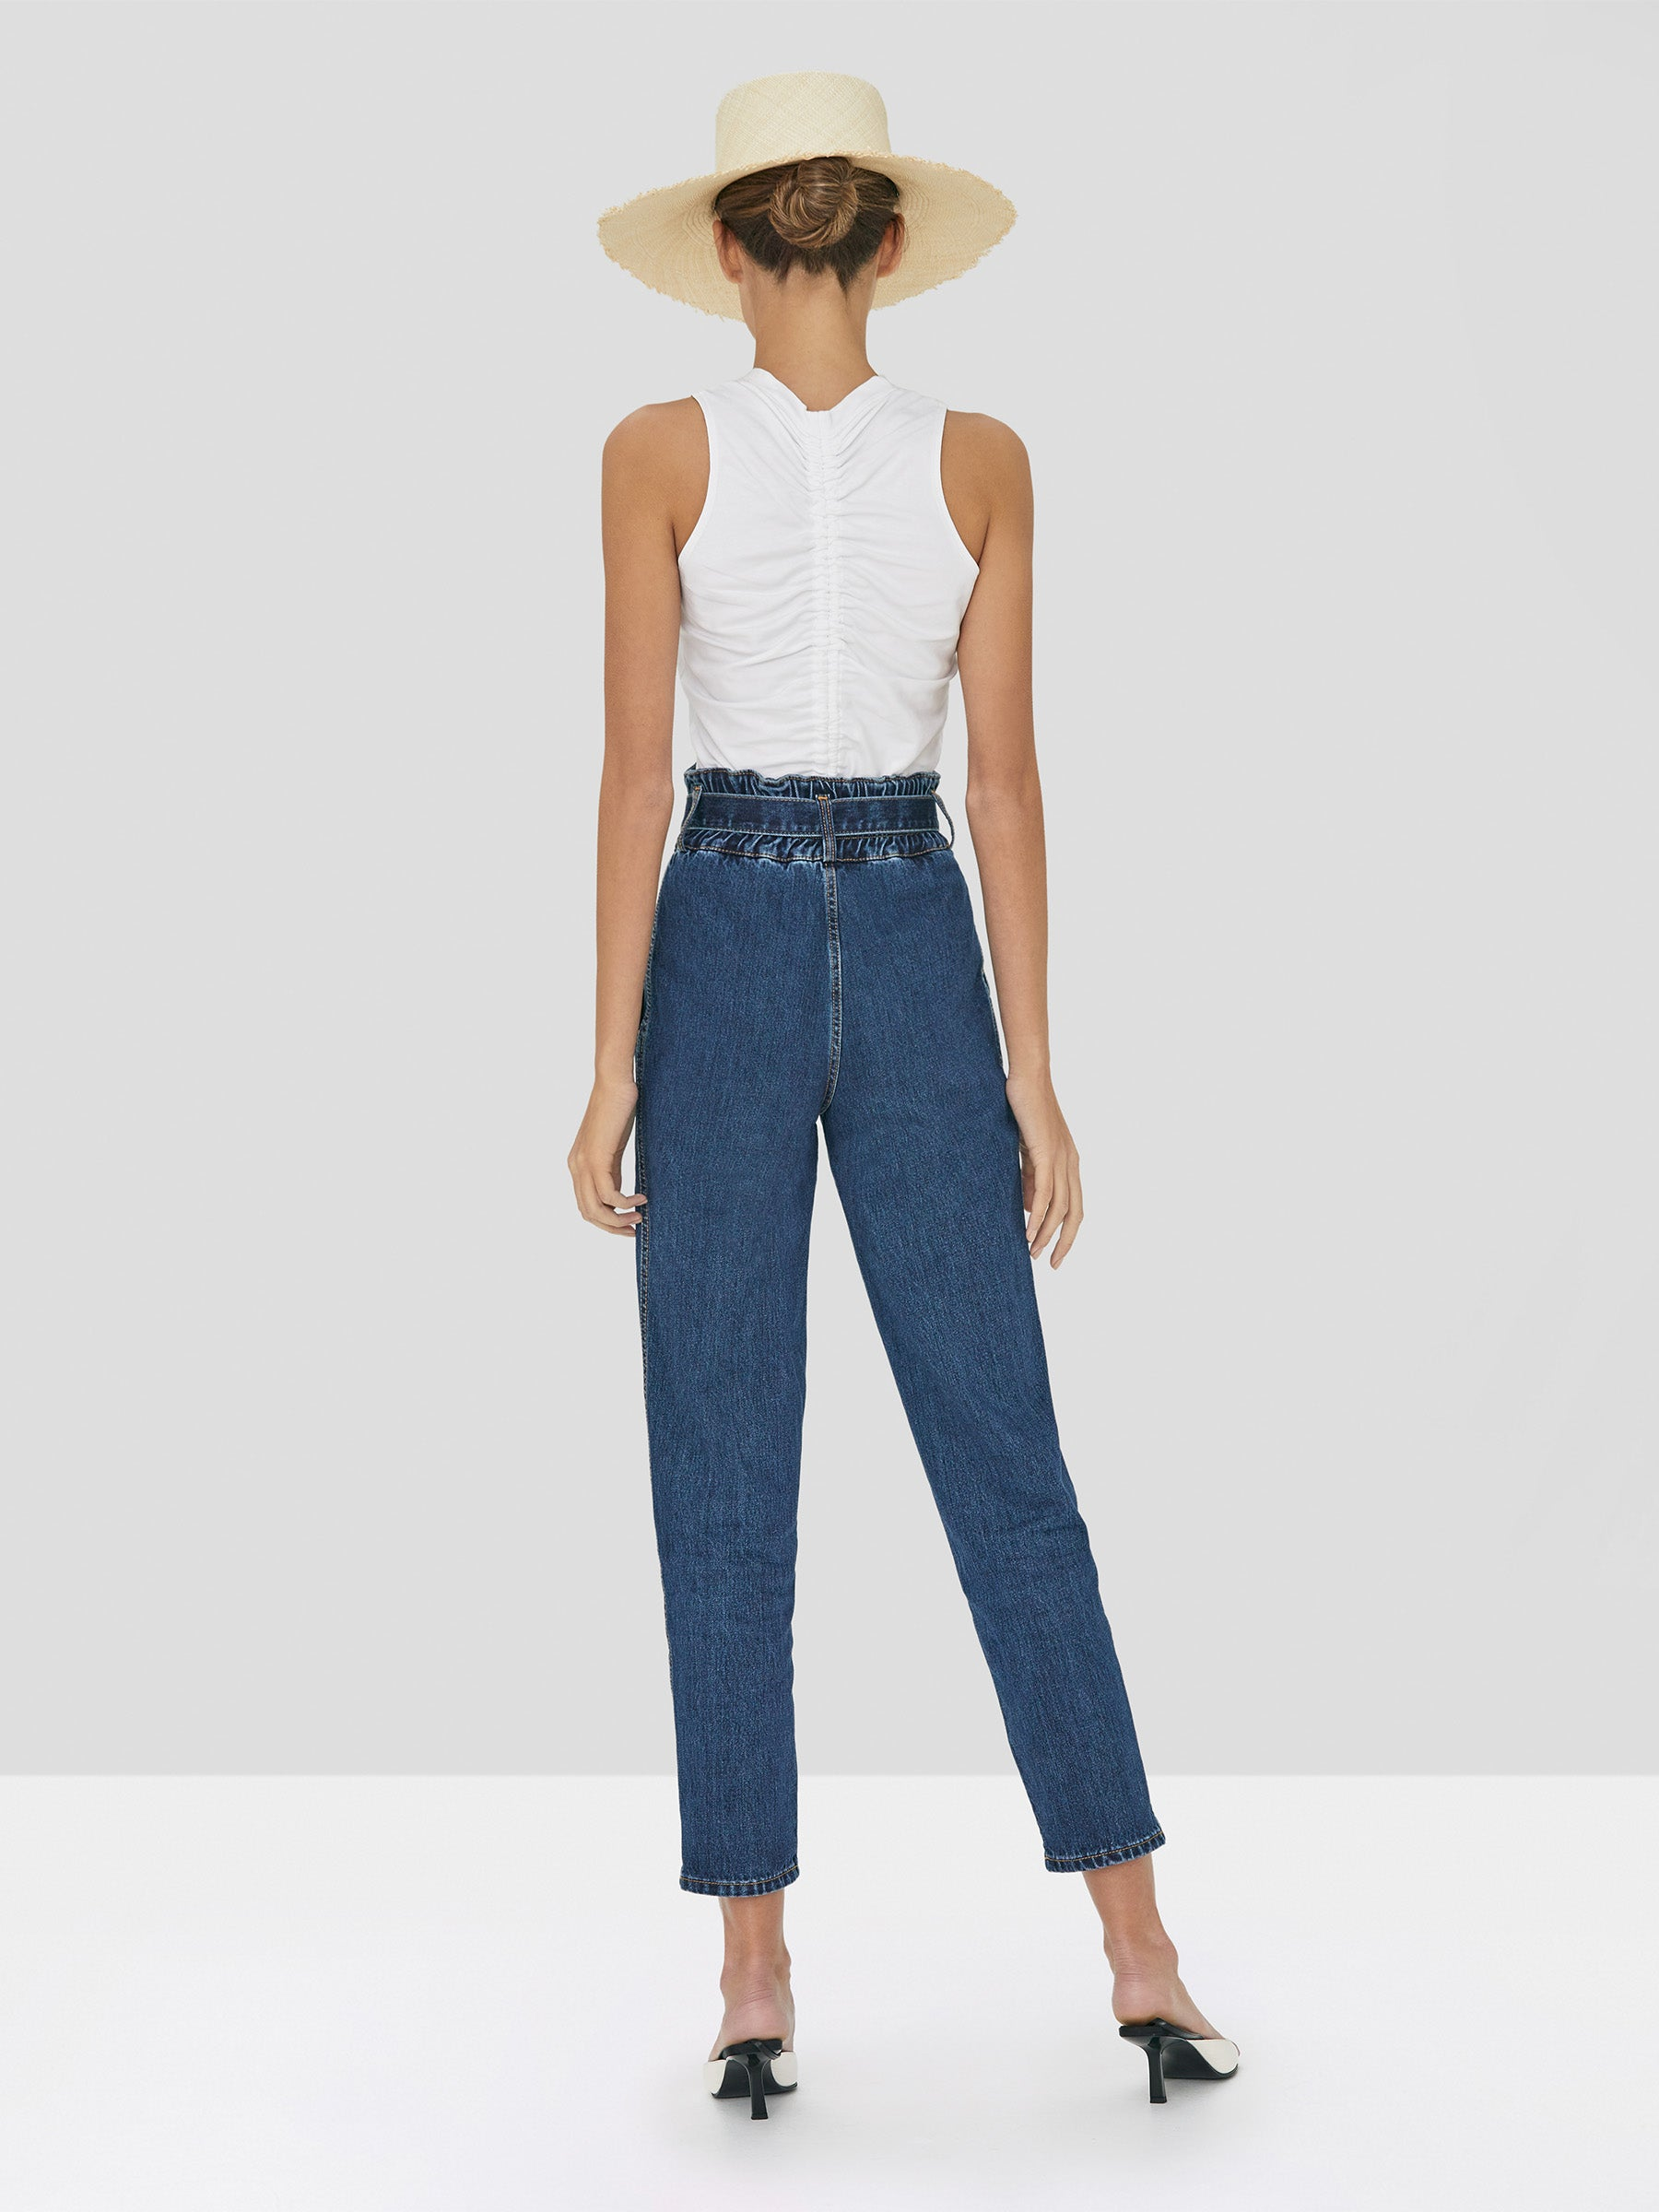 Alexis Teo Top White and Stannis Pant in Washed Denim Spring Summer 2020 Collection - Rear View